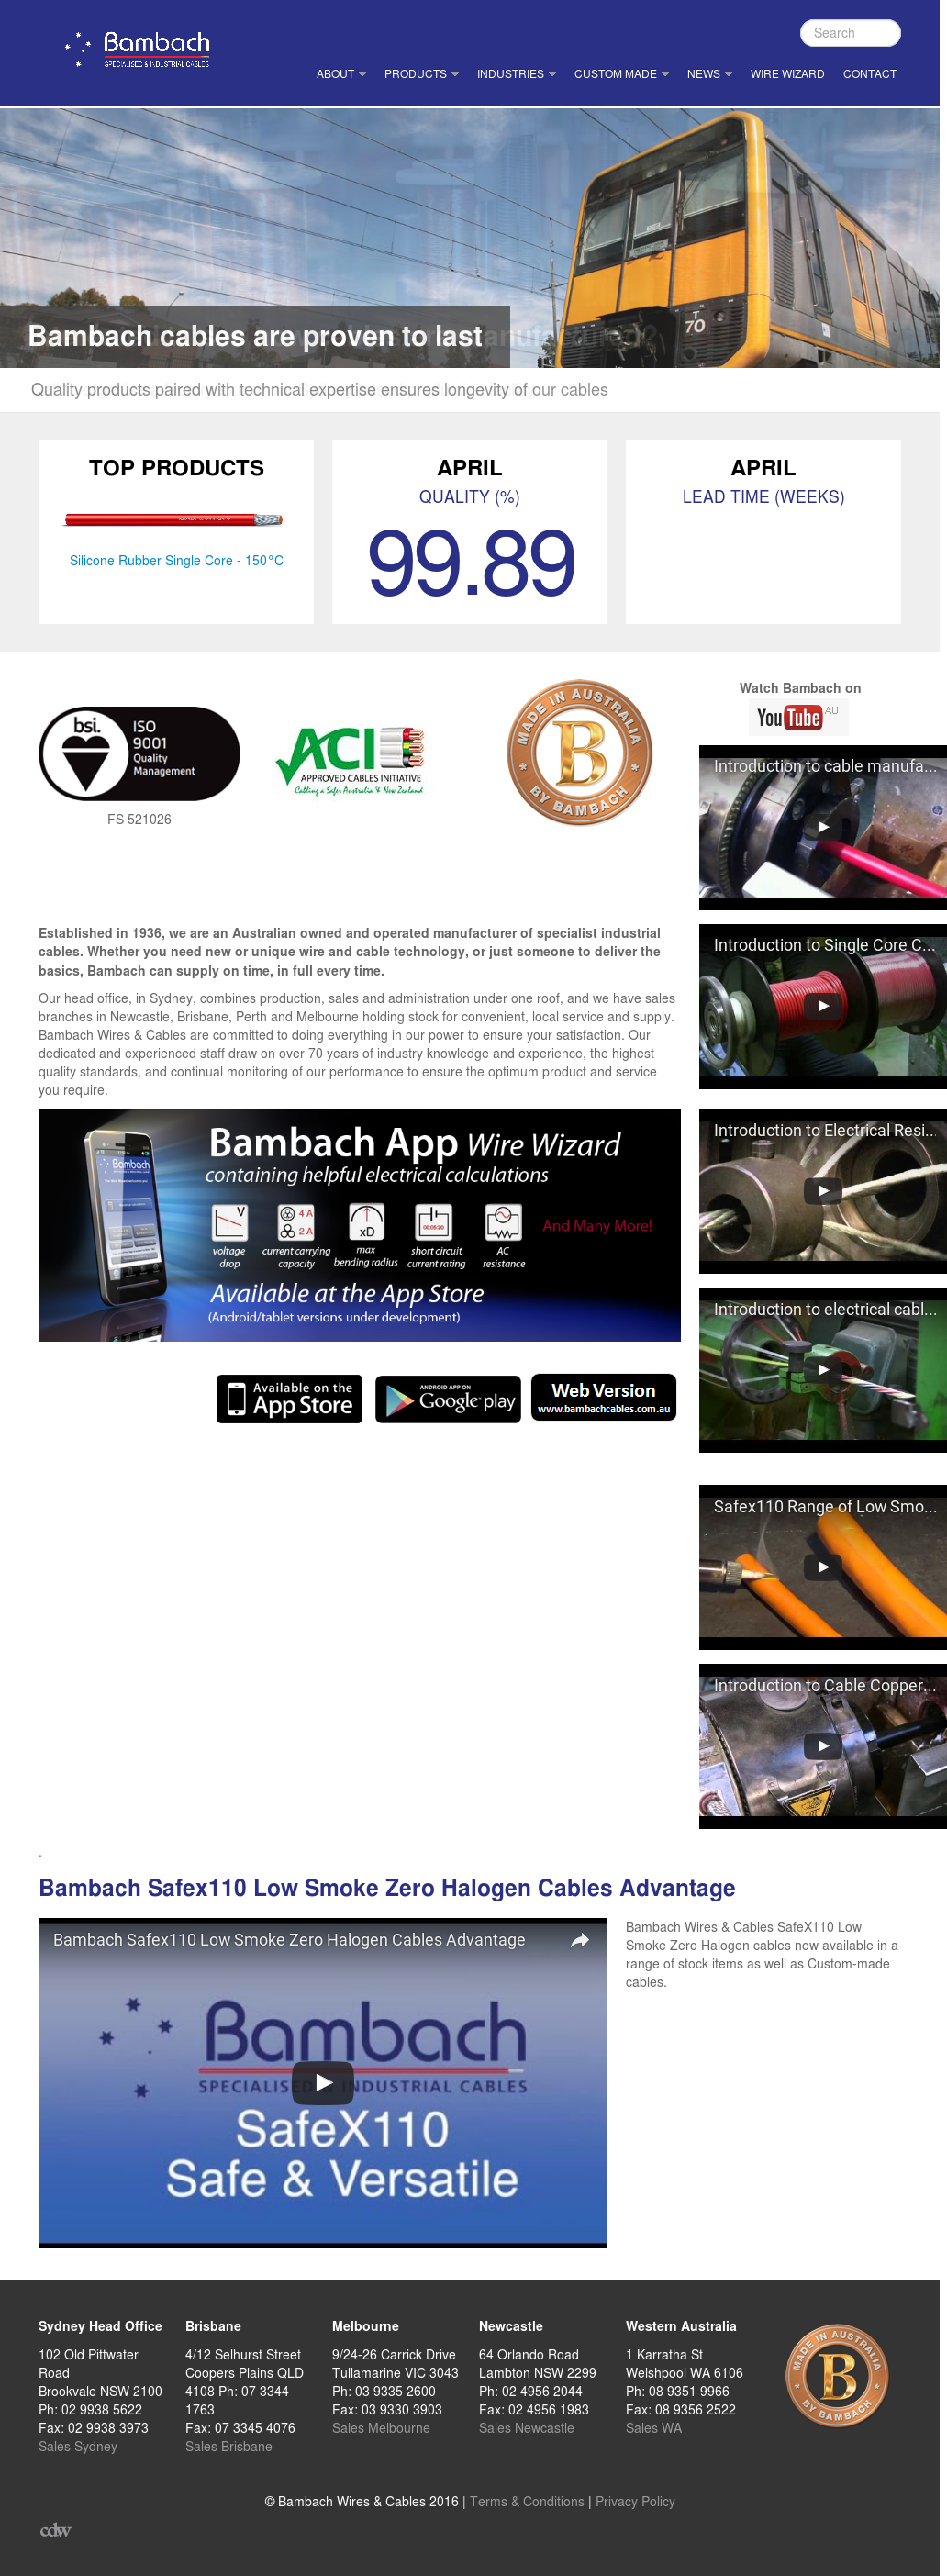 Bambachcables Competitors, Revenue and Employees - Owler Company Profile